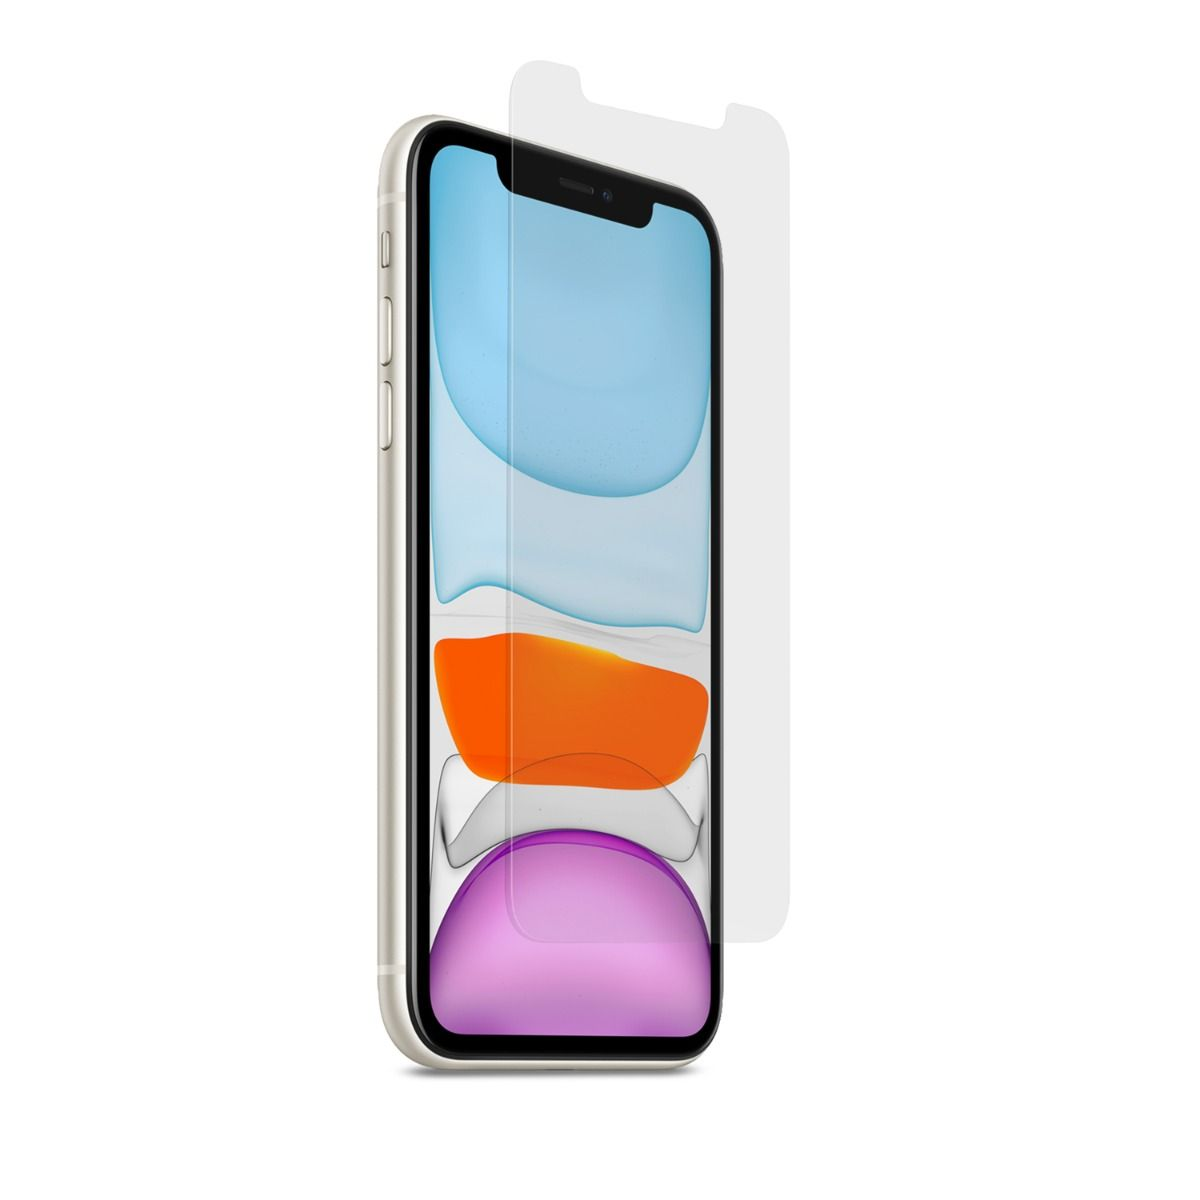 Apple iPhone 11 High-Definition Glass Screen Protector with Alignment Tray